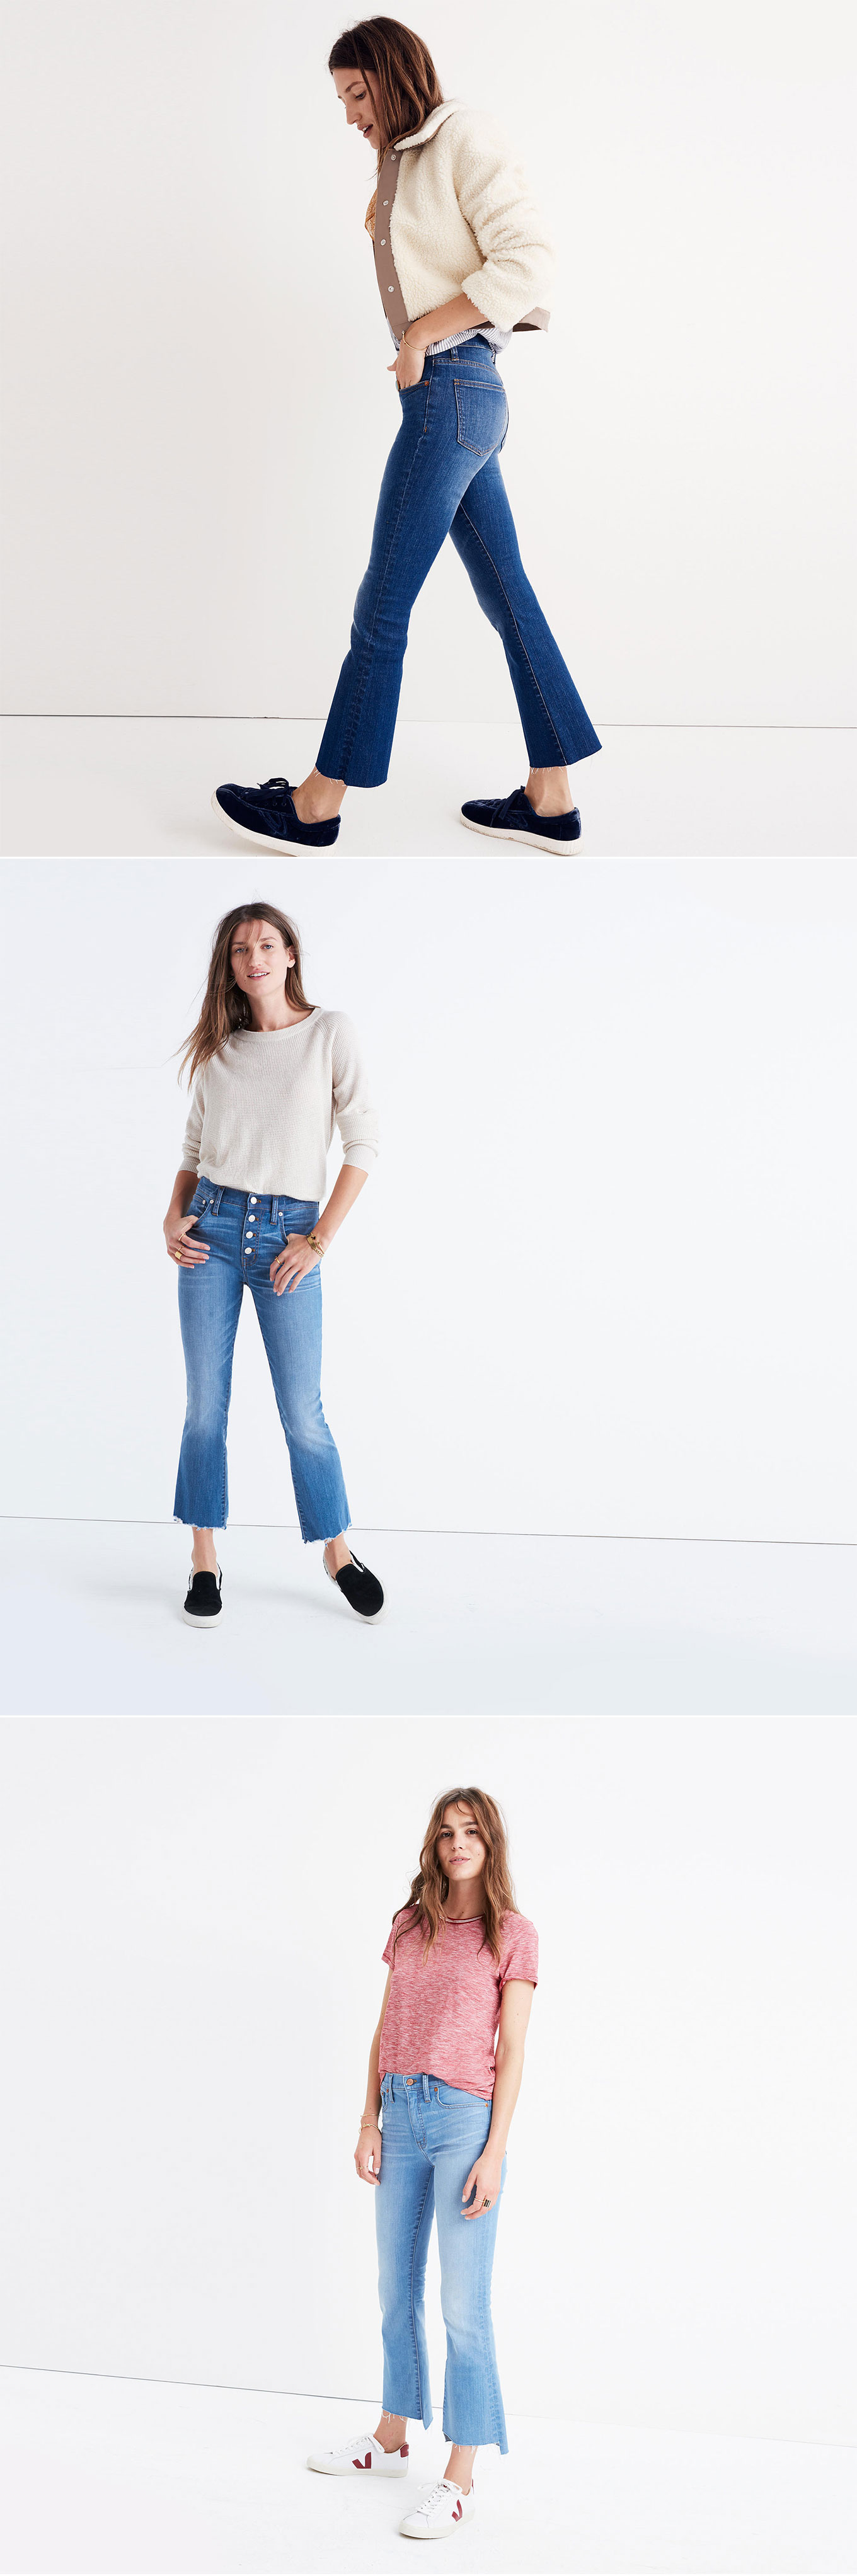 Seeing that frayed jeans are not going away,Ridgely Brode shows you her favorite pair and others that she can't wait to wear on Ridgely's Radar.